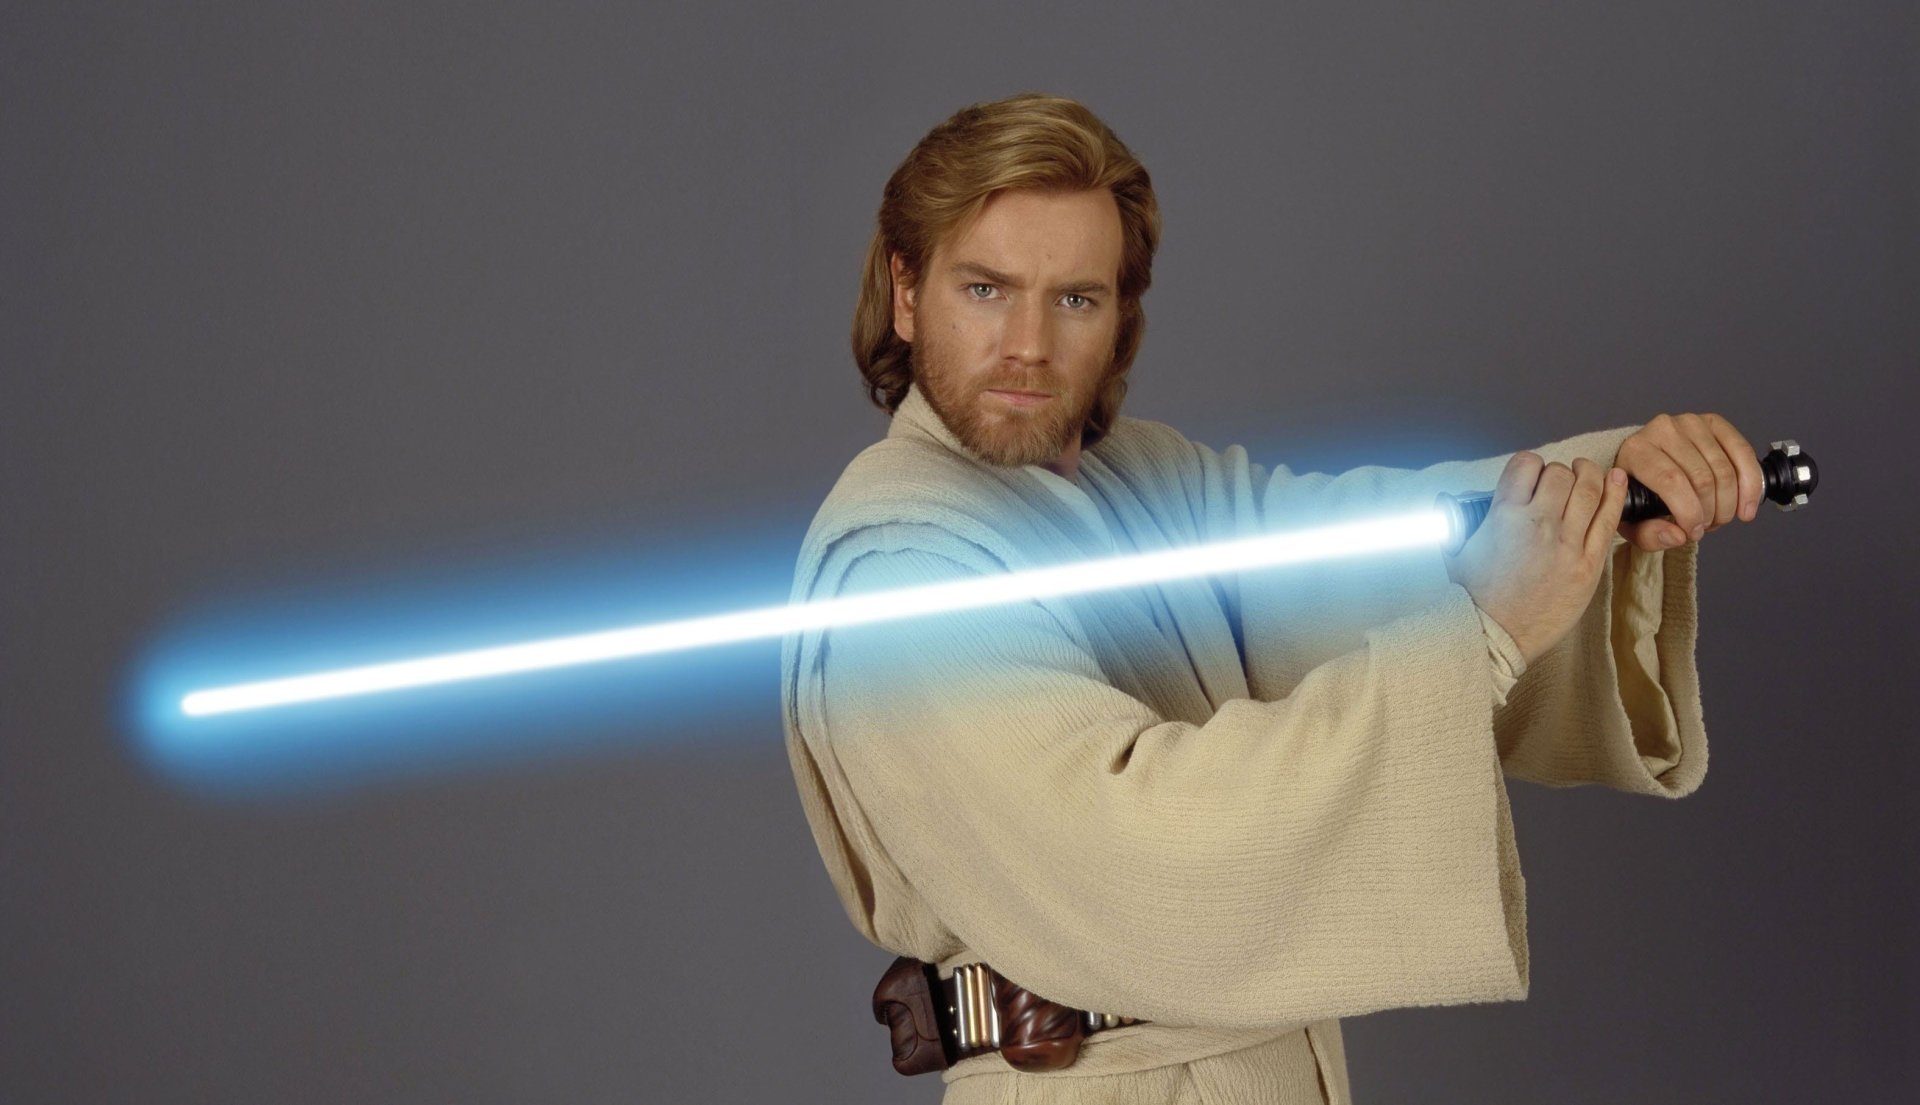 Disney confirms Obi-Wan Kenobi series, Ewan McGregor returns